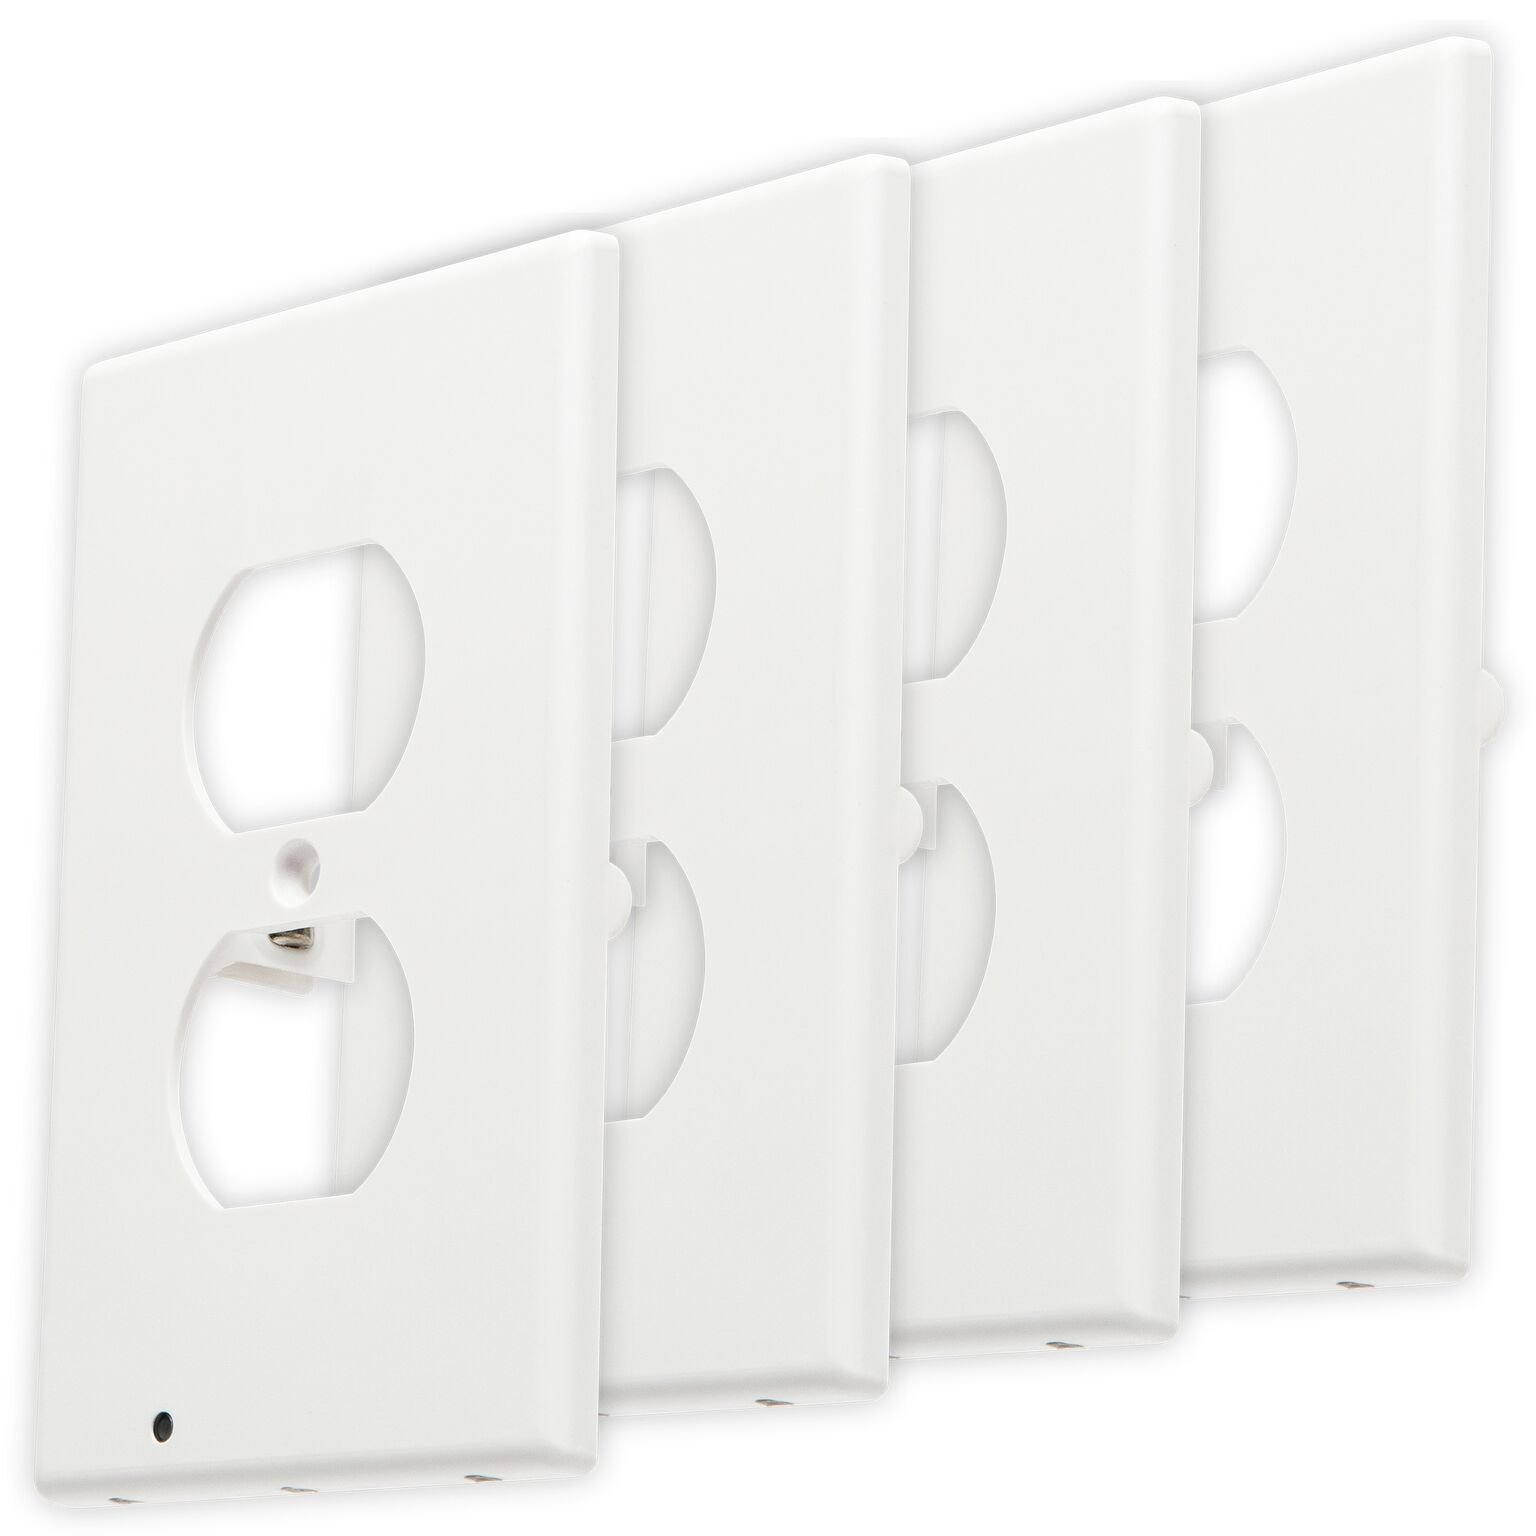 FanFav Elements Premium LED Night Light Outlet Covers - No Batteries or Wires - (Duplex 4 Pack) - White Plastic Wall Plate Guidelight